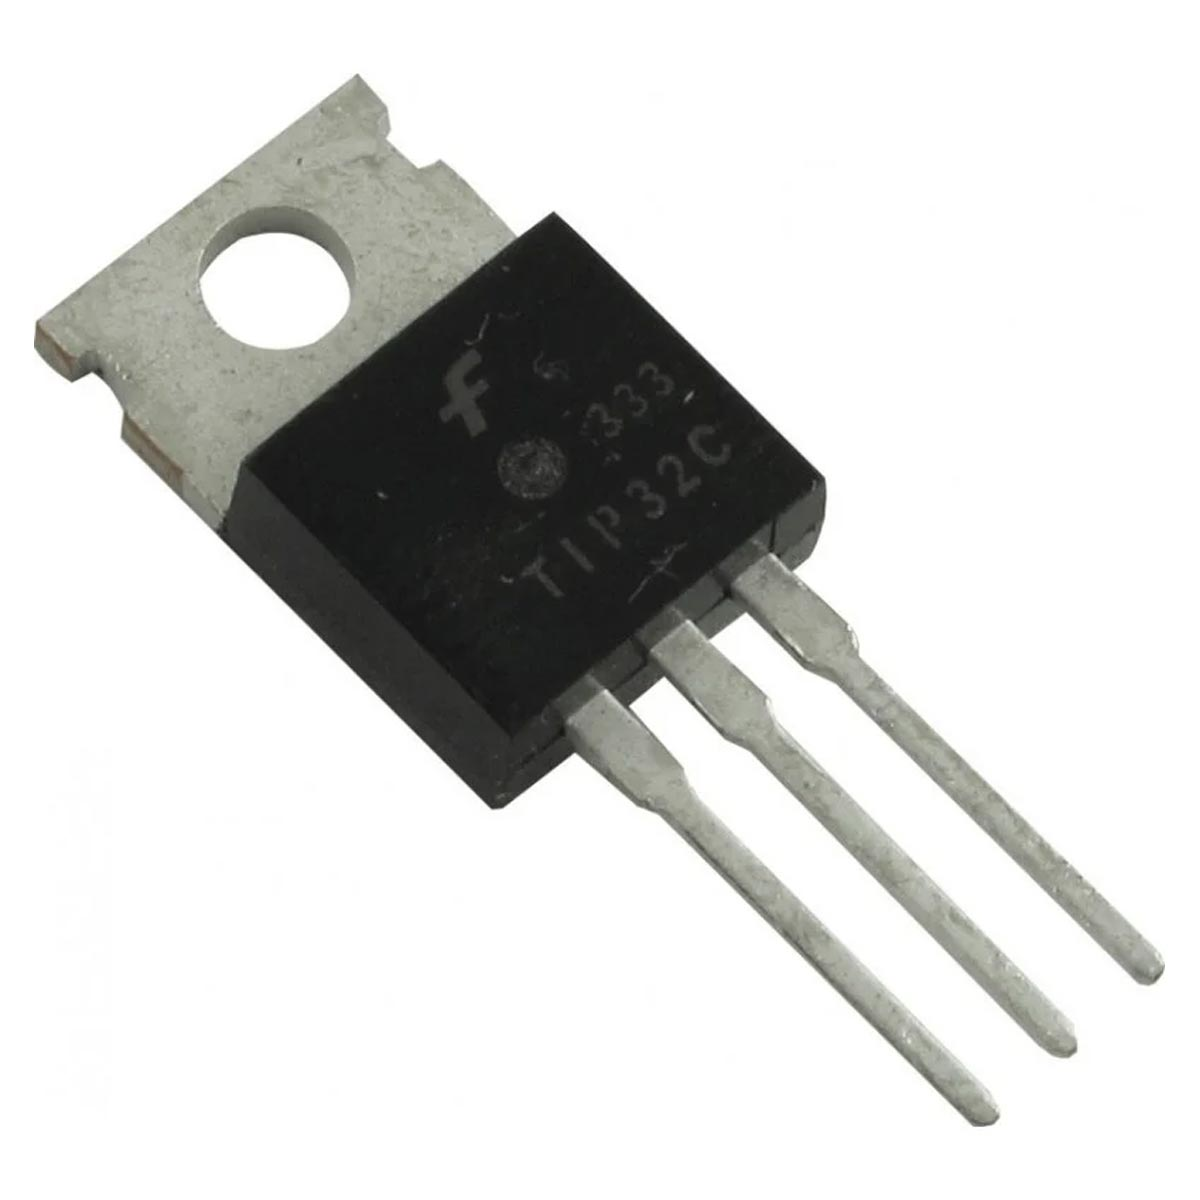 3x Transistor PNP TIP32c 100v 3A Power To-220